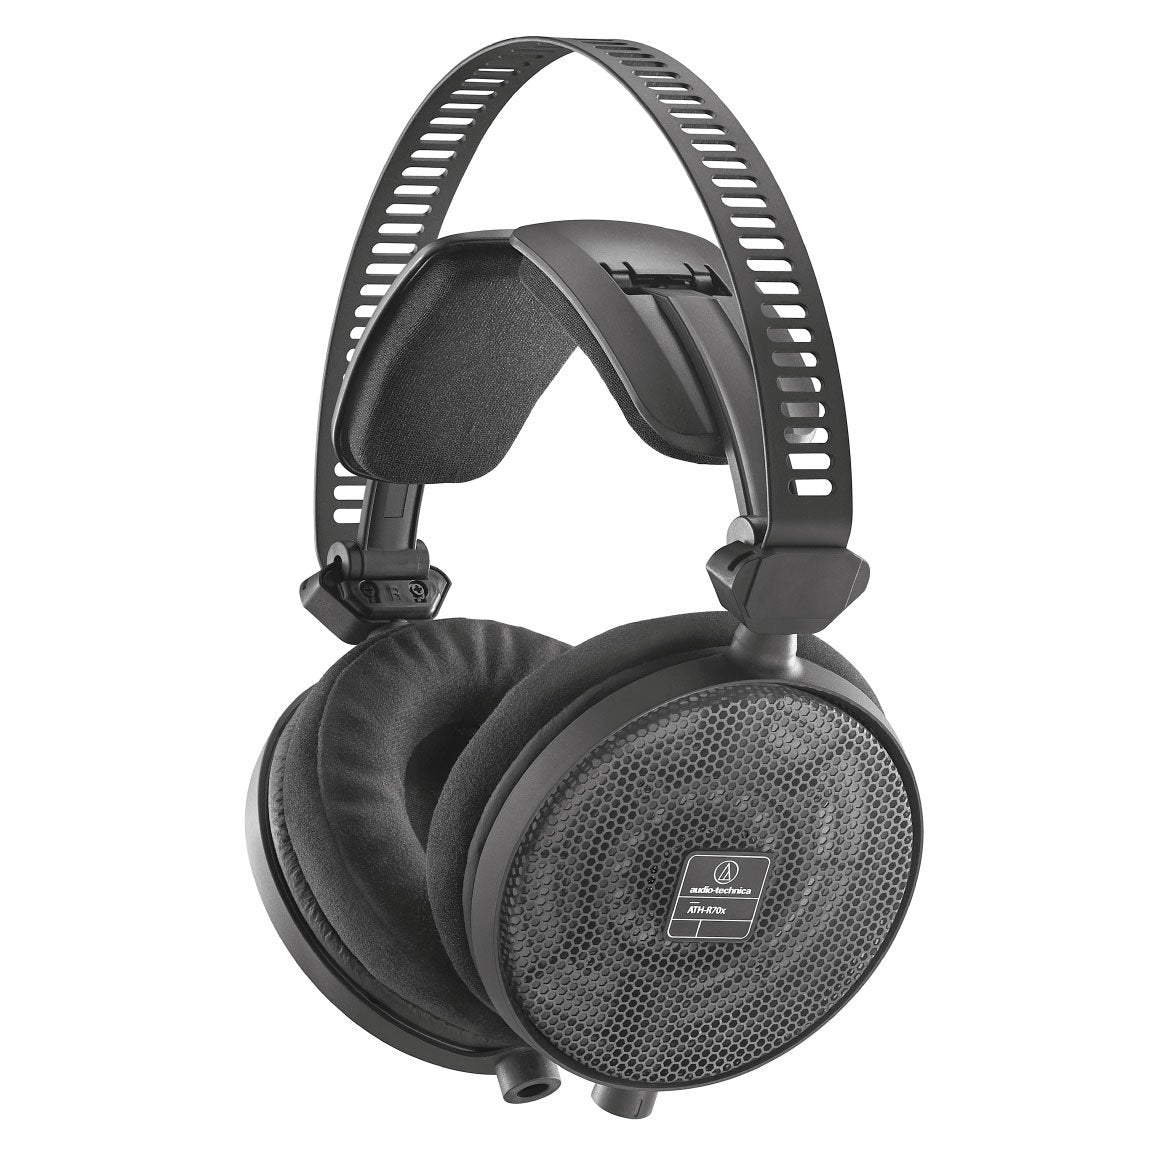 Audio-Technica - ATH-R70xvs competitors